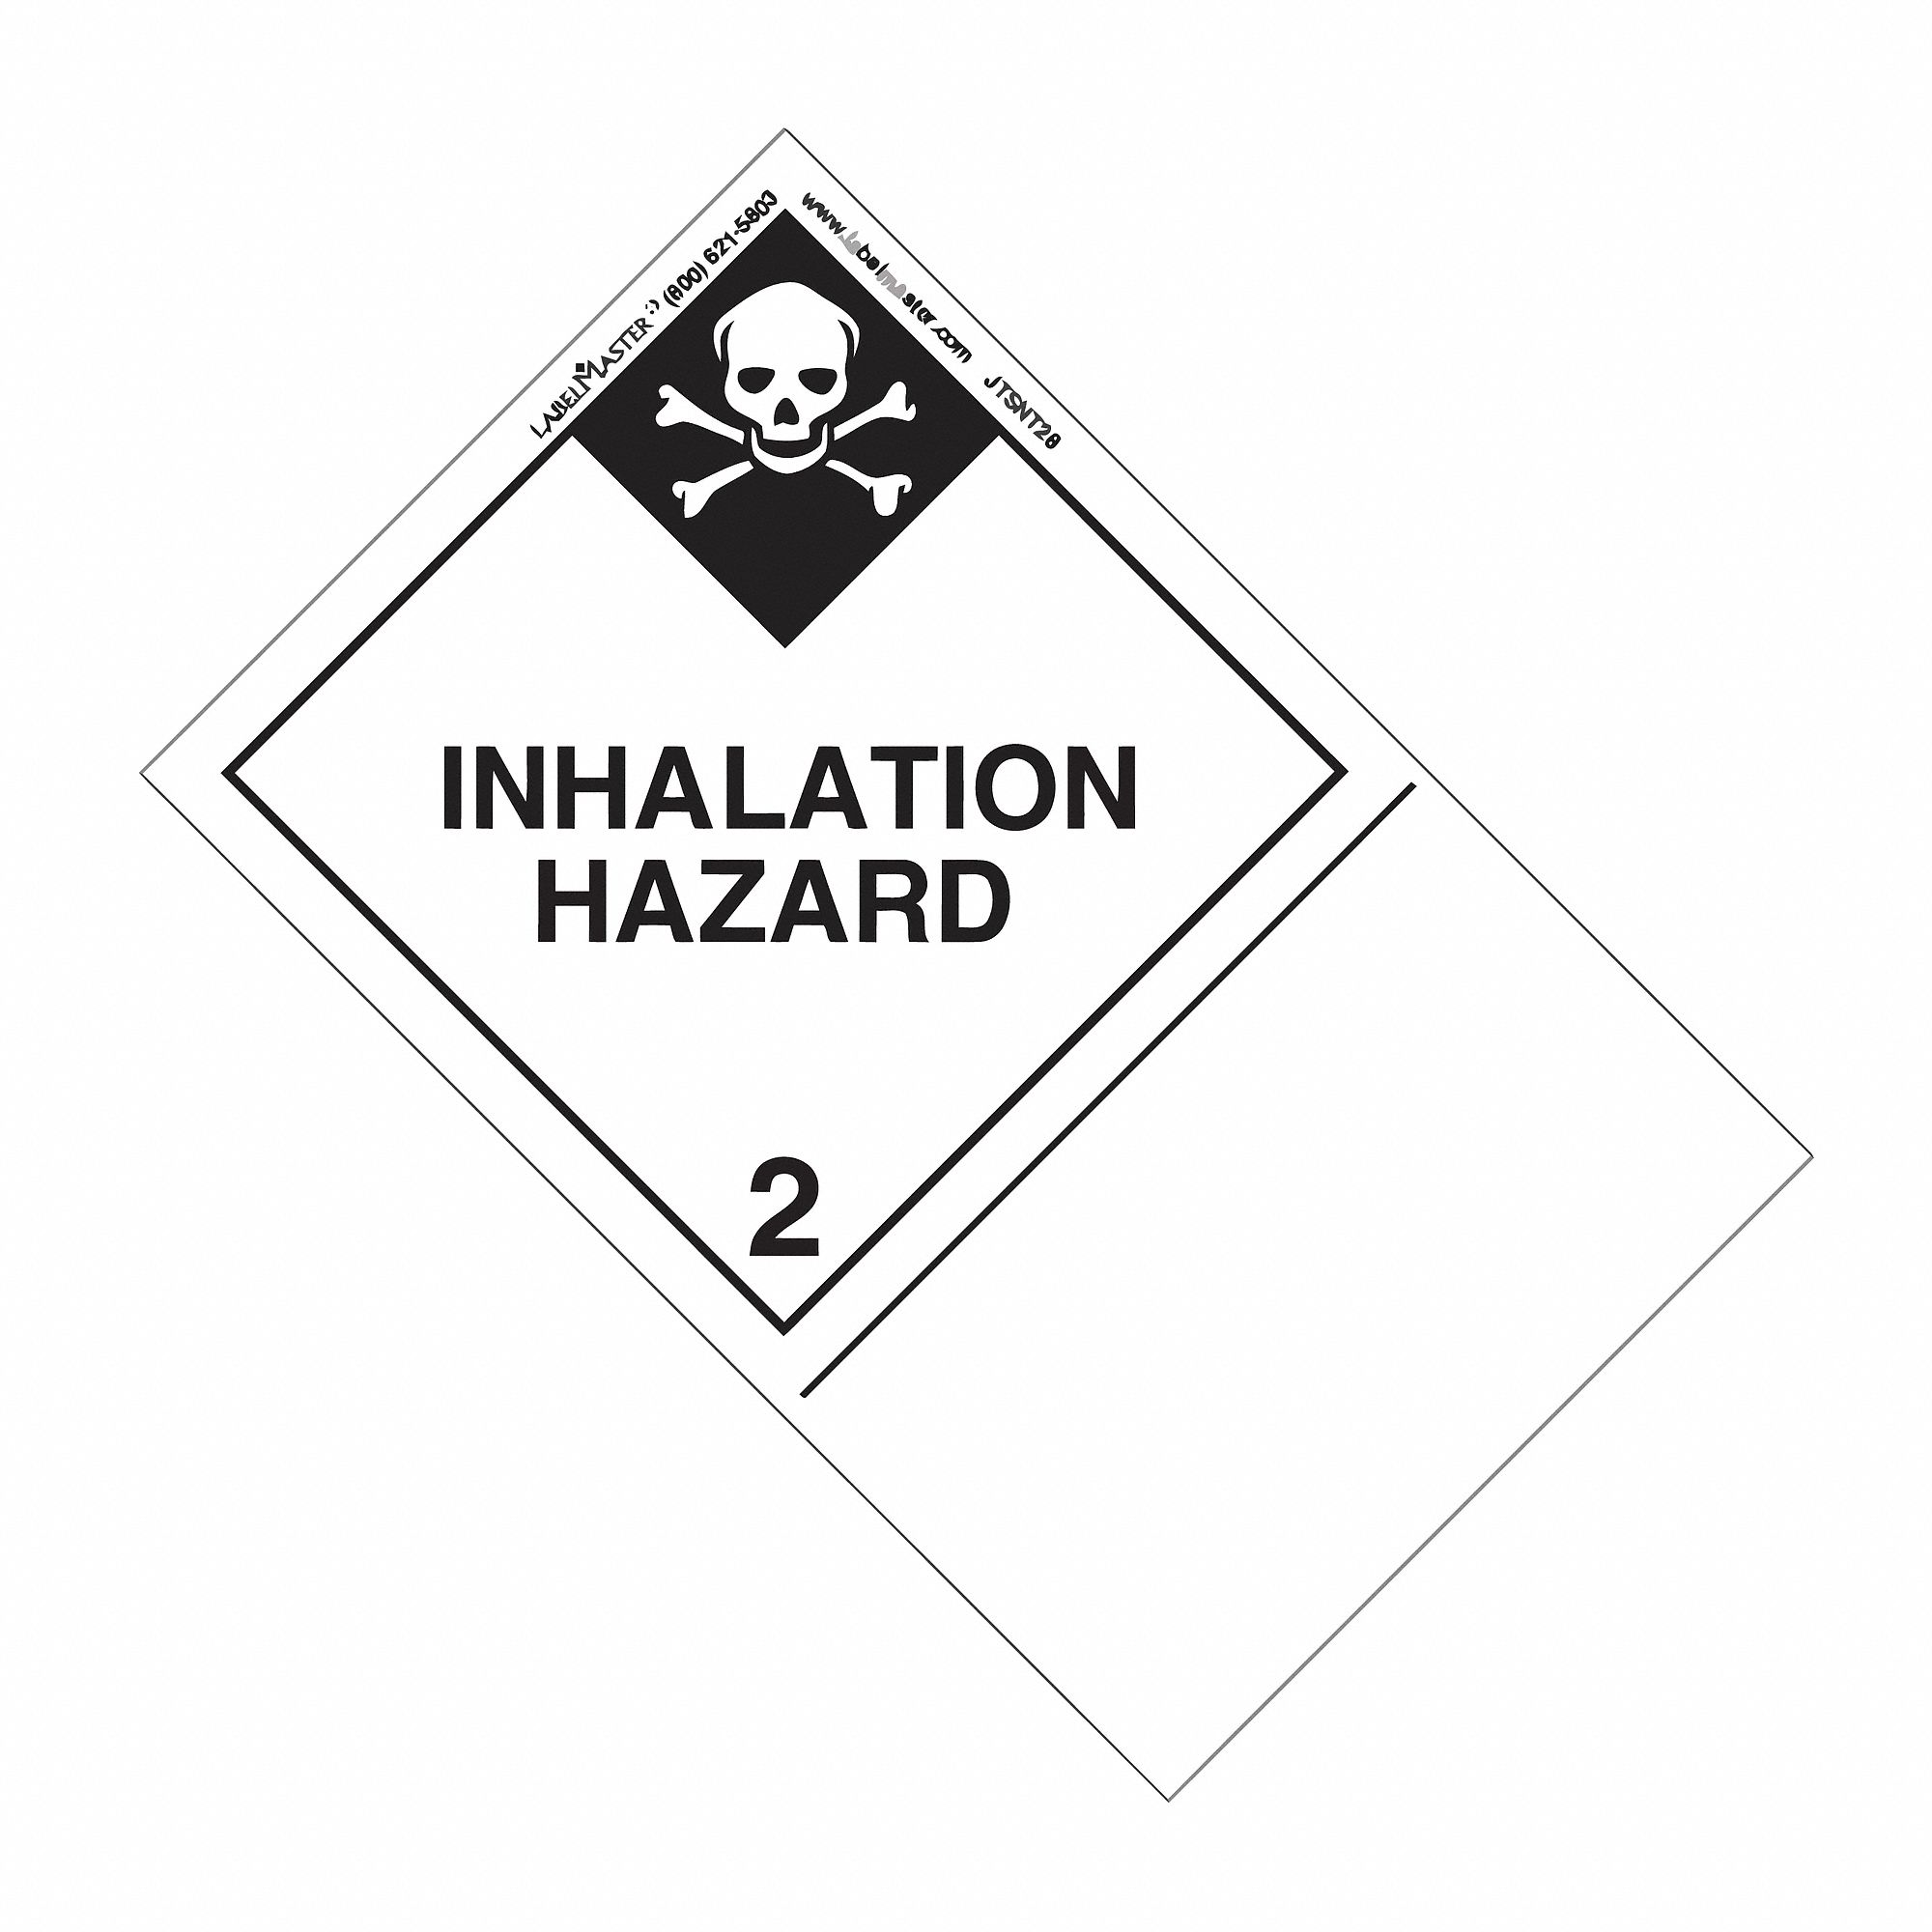 49 cfr 172 300 and 172 400 icao 5 2 and 5 3 imo 5 2 vehicle Downloadable NFPA Label 160mm x 100mm class 2 paper inhalation hazard label white black